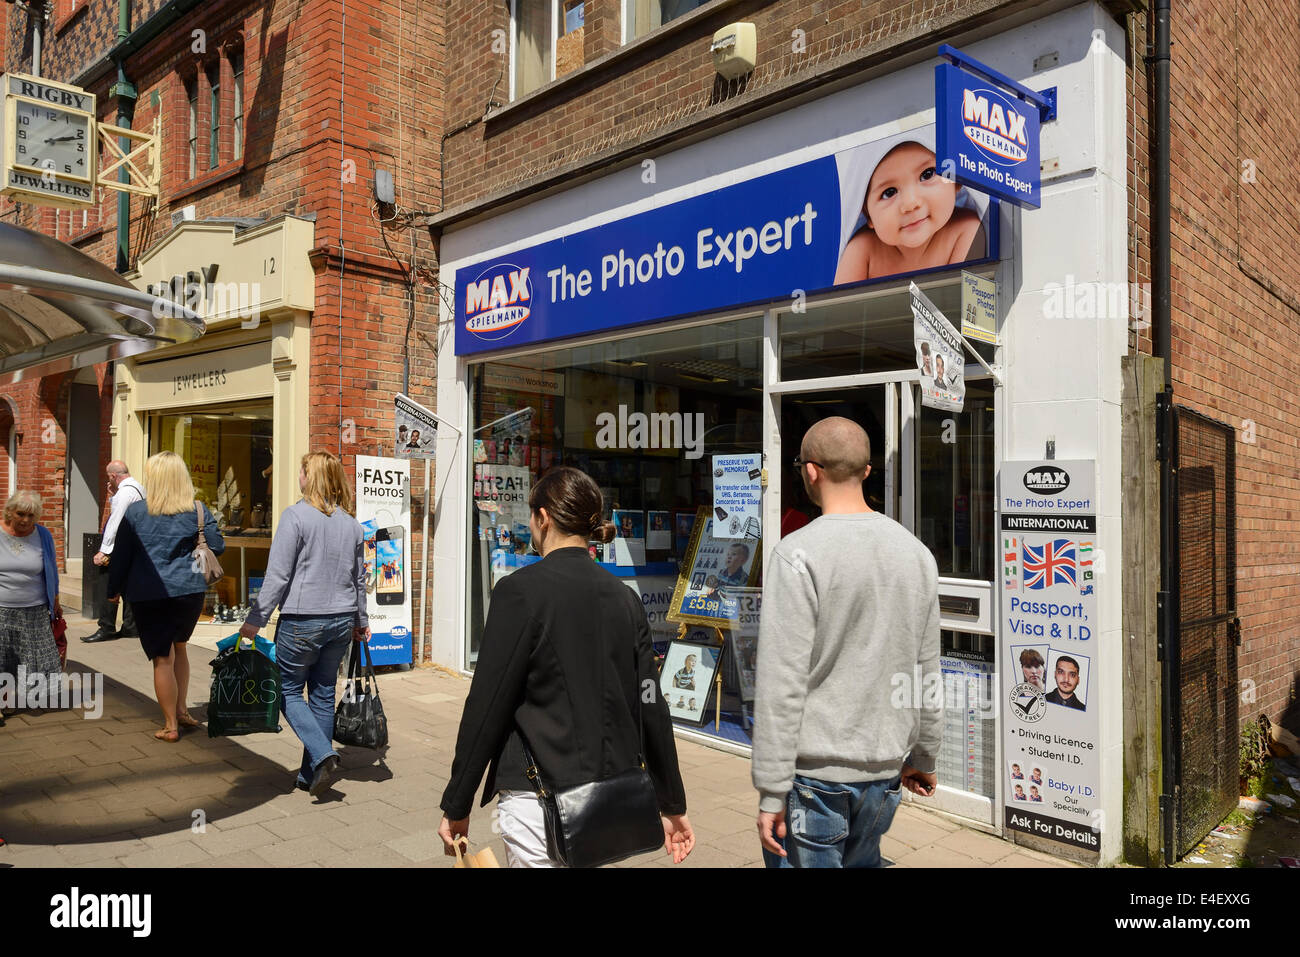 People in front of a Max Spielmann photo store - Stock Image